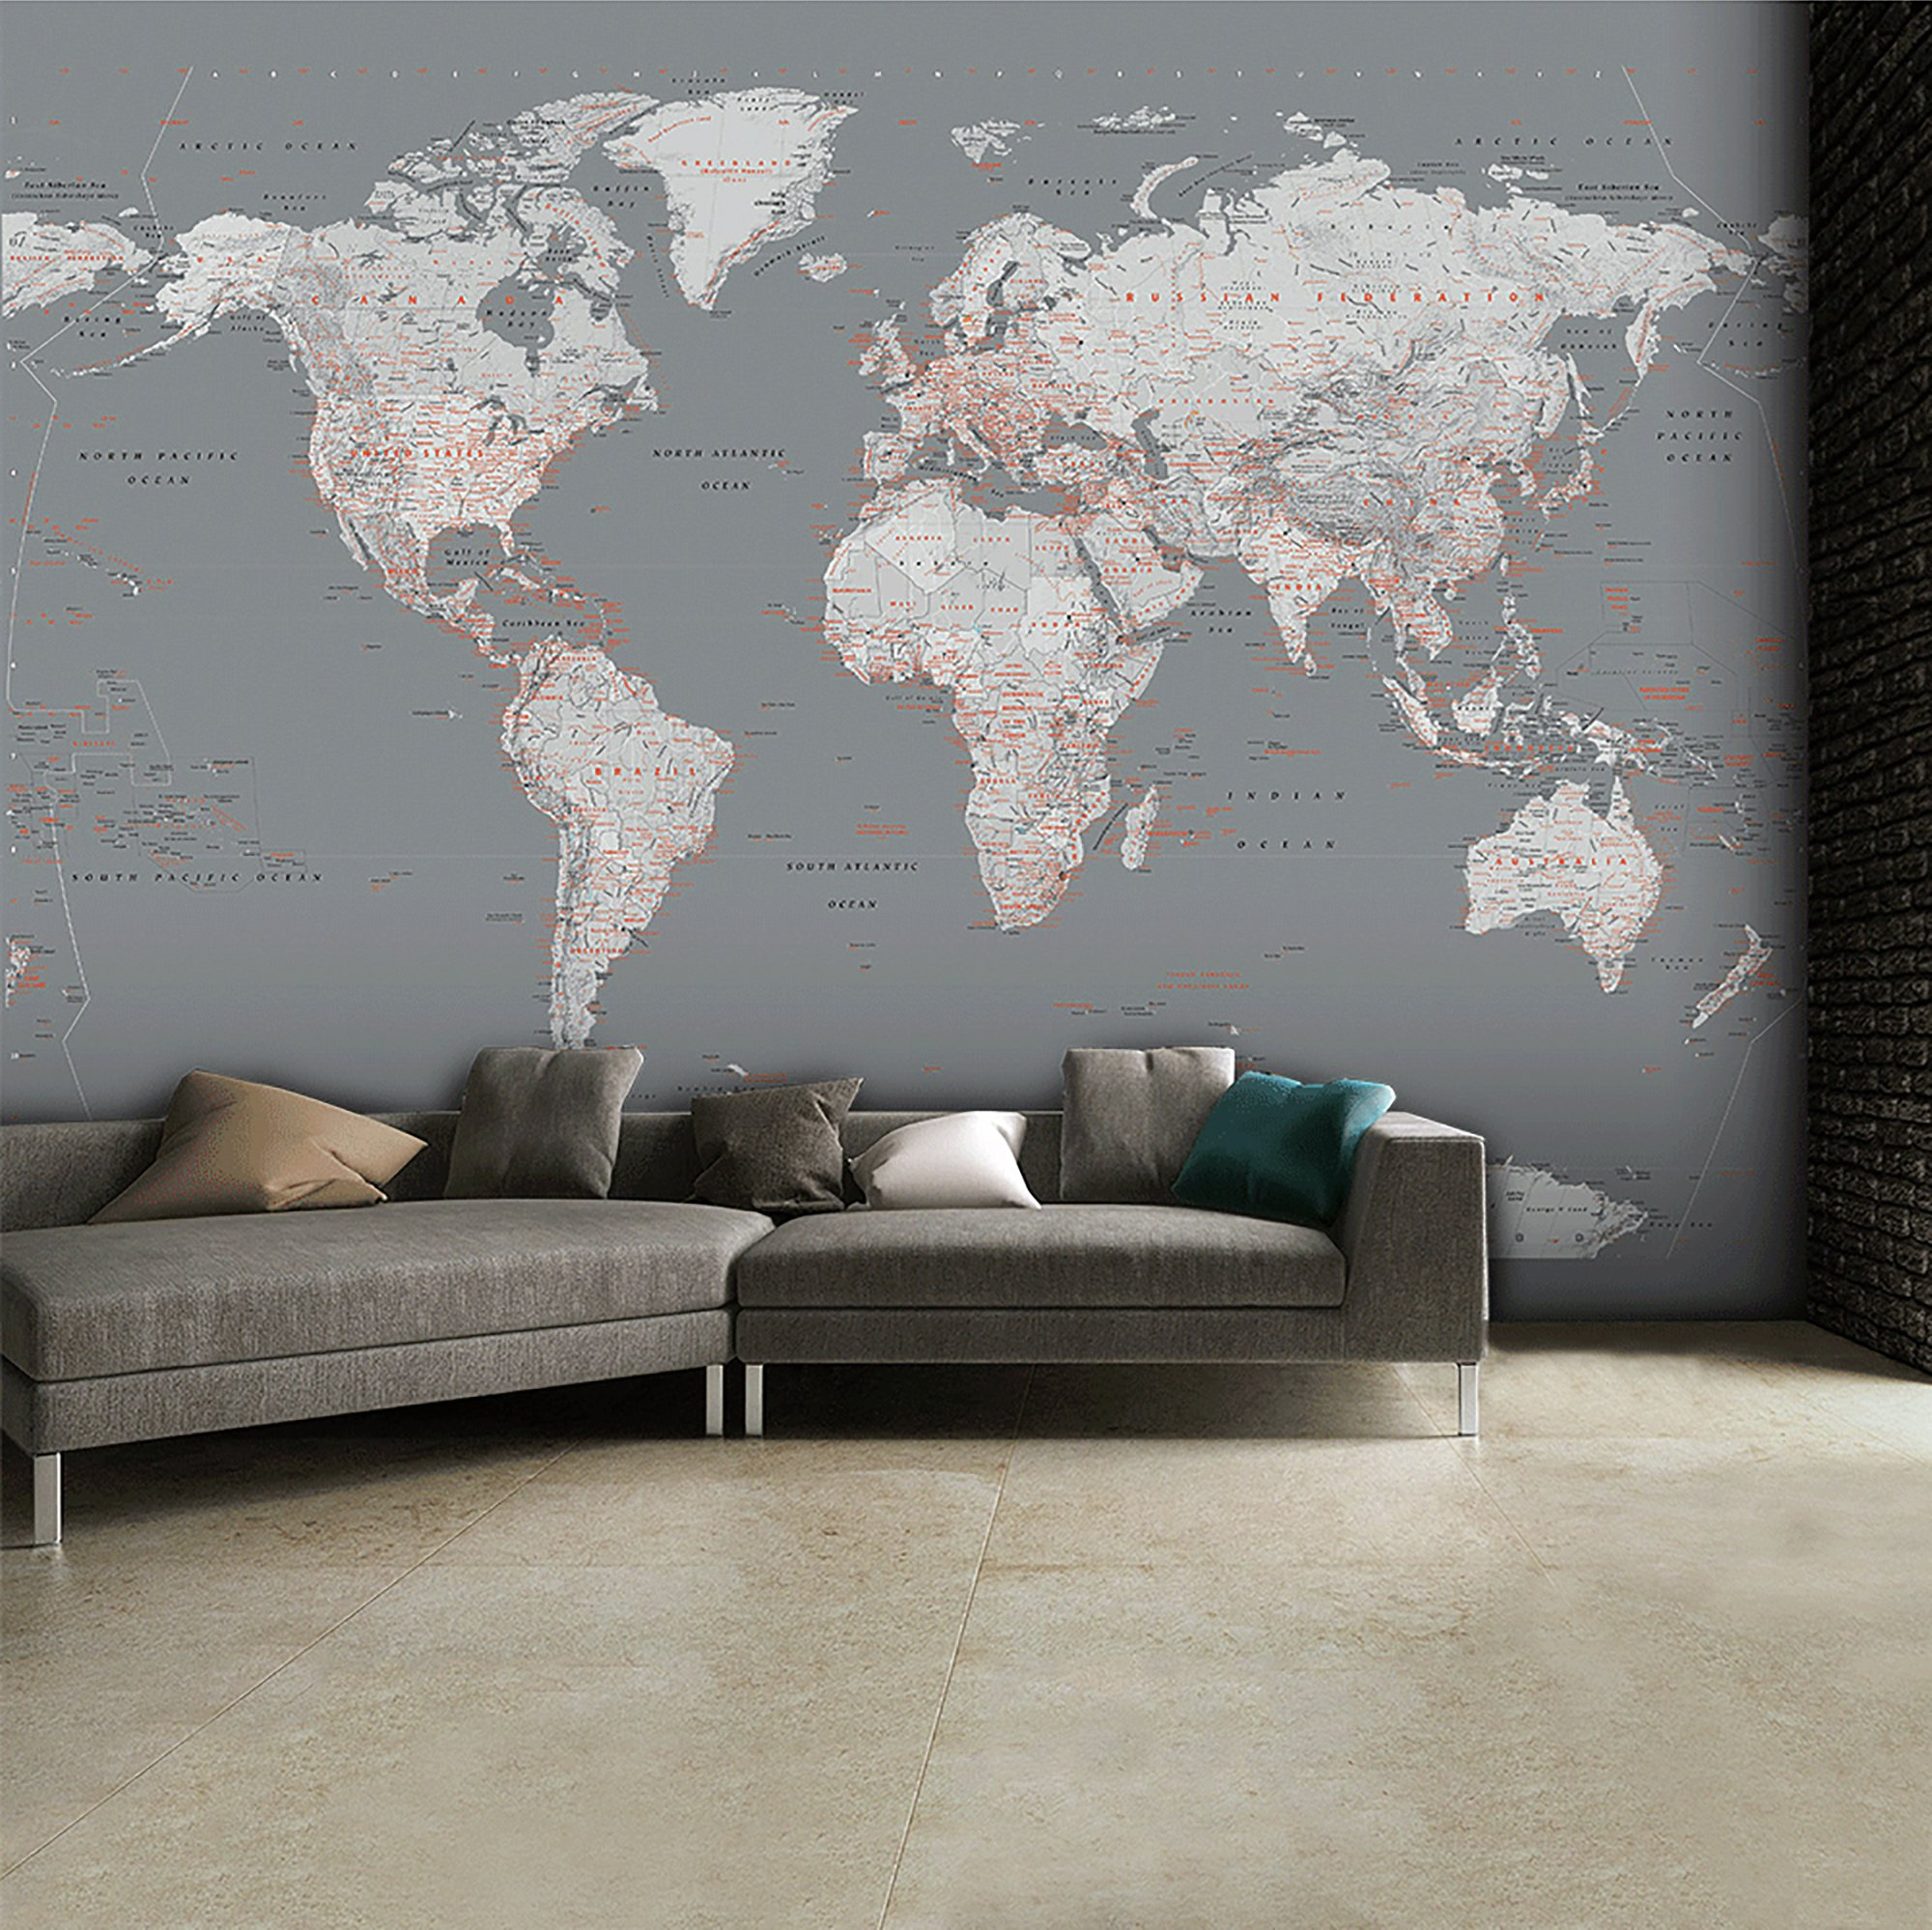 1wall grey map of the world mural.